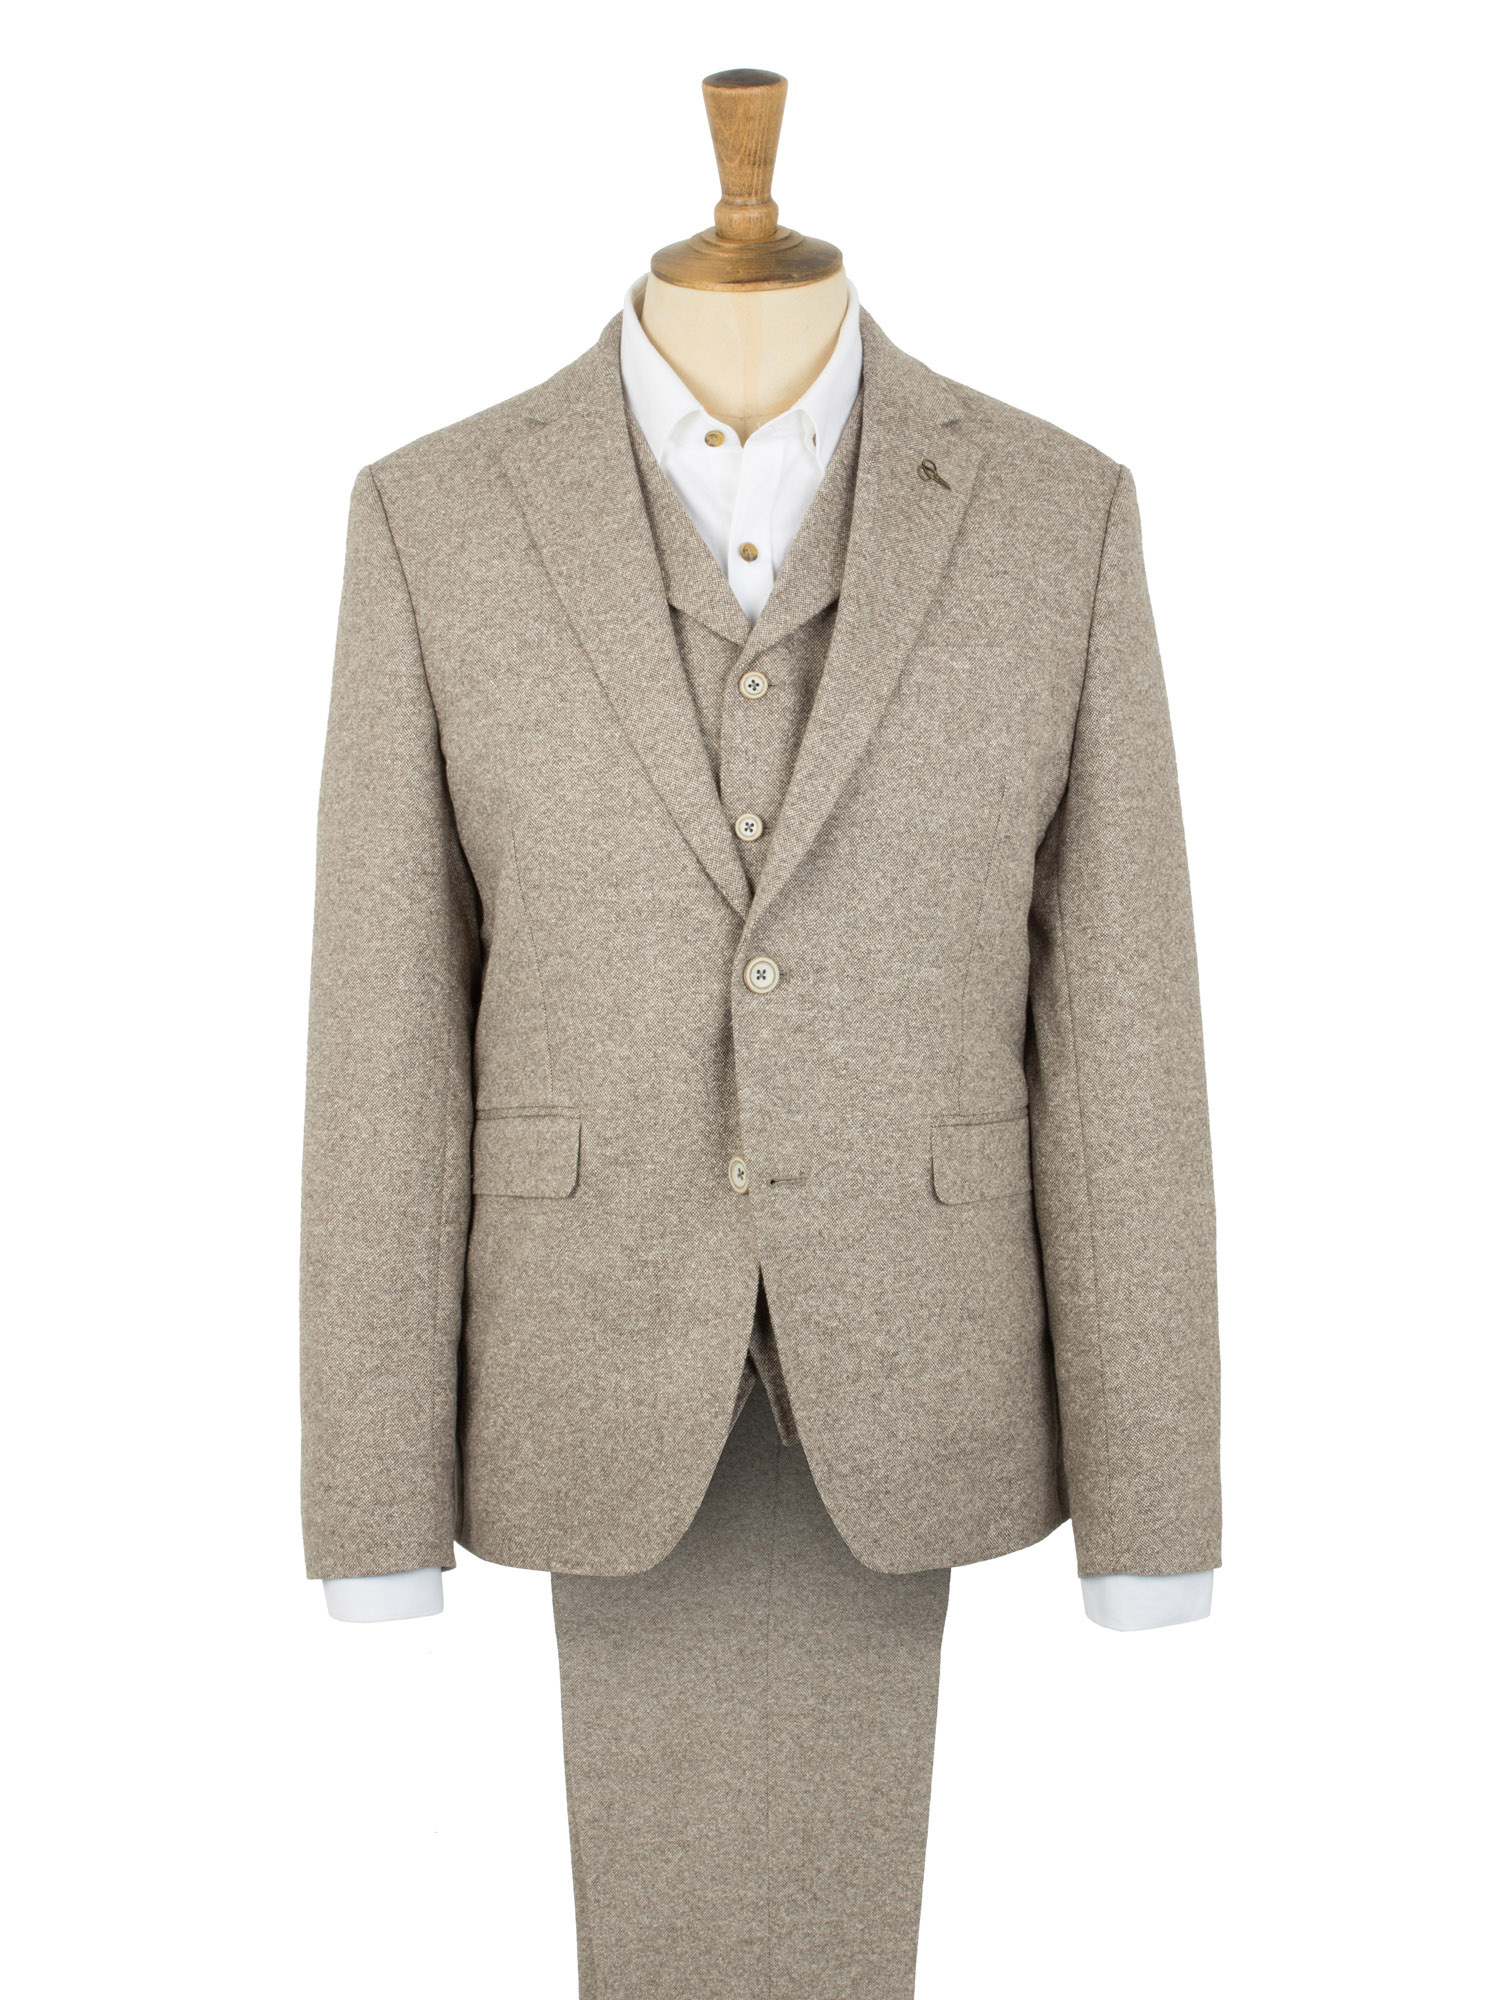 Make a polished impression in these classic oatmeal tweed skinny suit pants. Featuring a zip fly with hook fastening and belt loops. 60% Wool, 40% Polyester. Do not trickytrydown2.tk: $